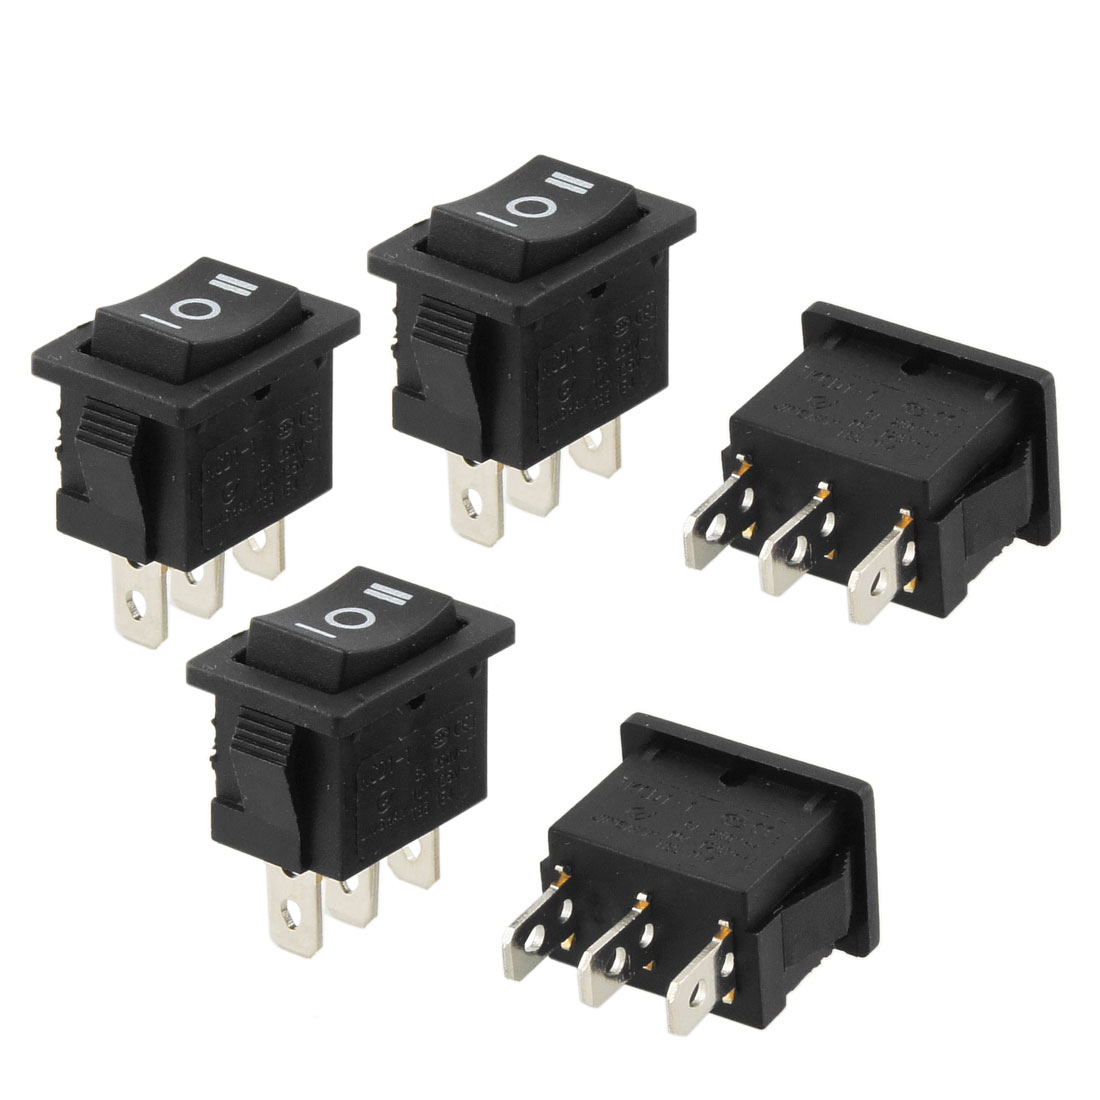 5 Pcs AC 250V/6A 125V/10A 3 Pin SPDT Snap in on/off/on Rocker Switch